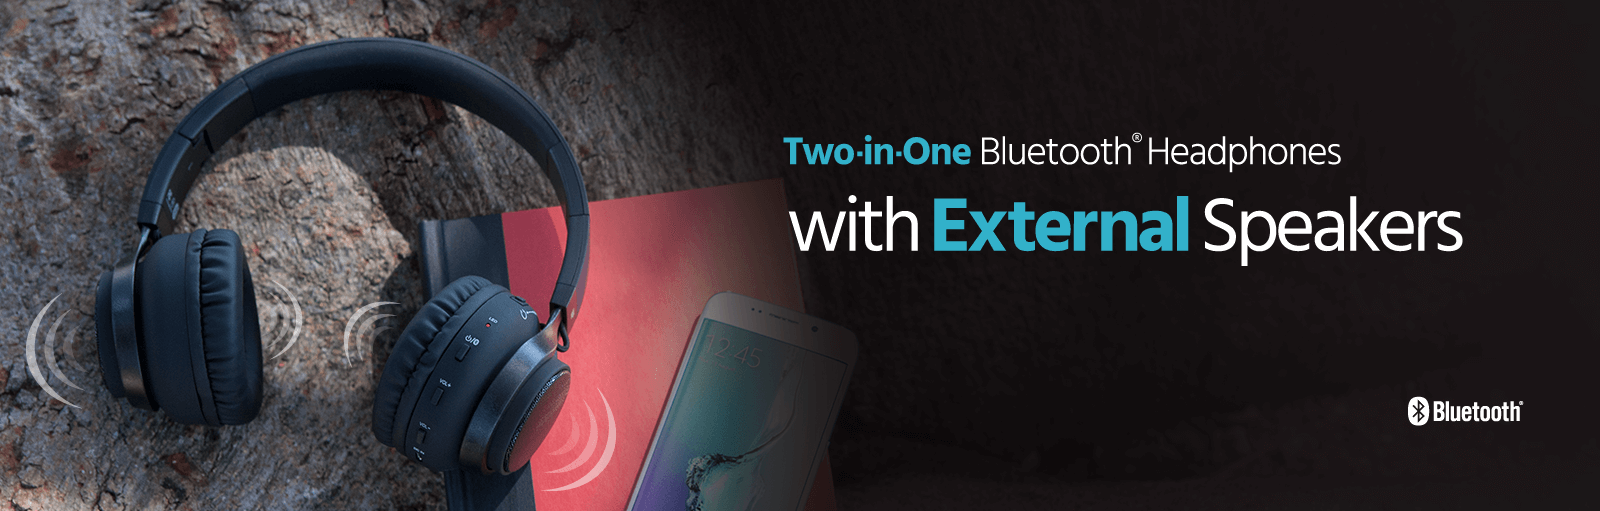 Two-in-One Bluetooth Headphones